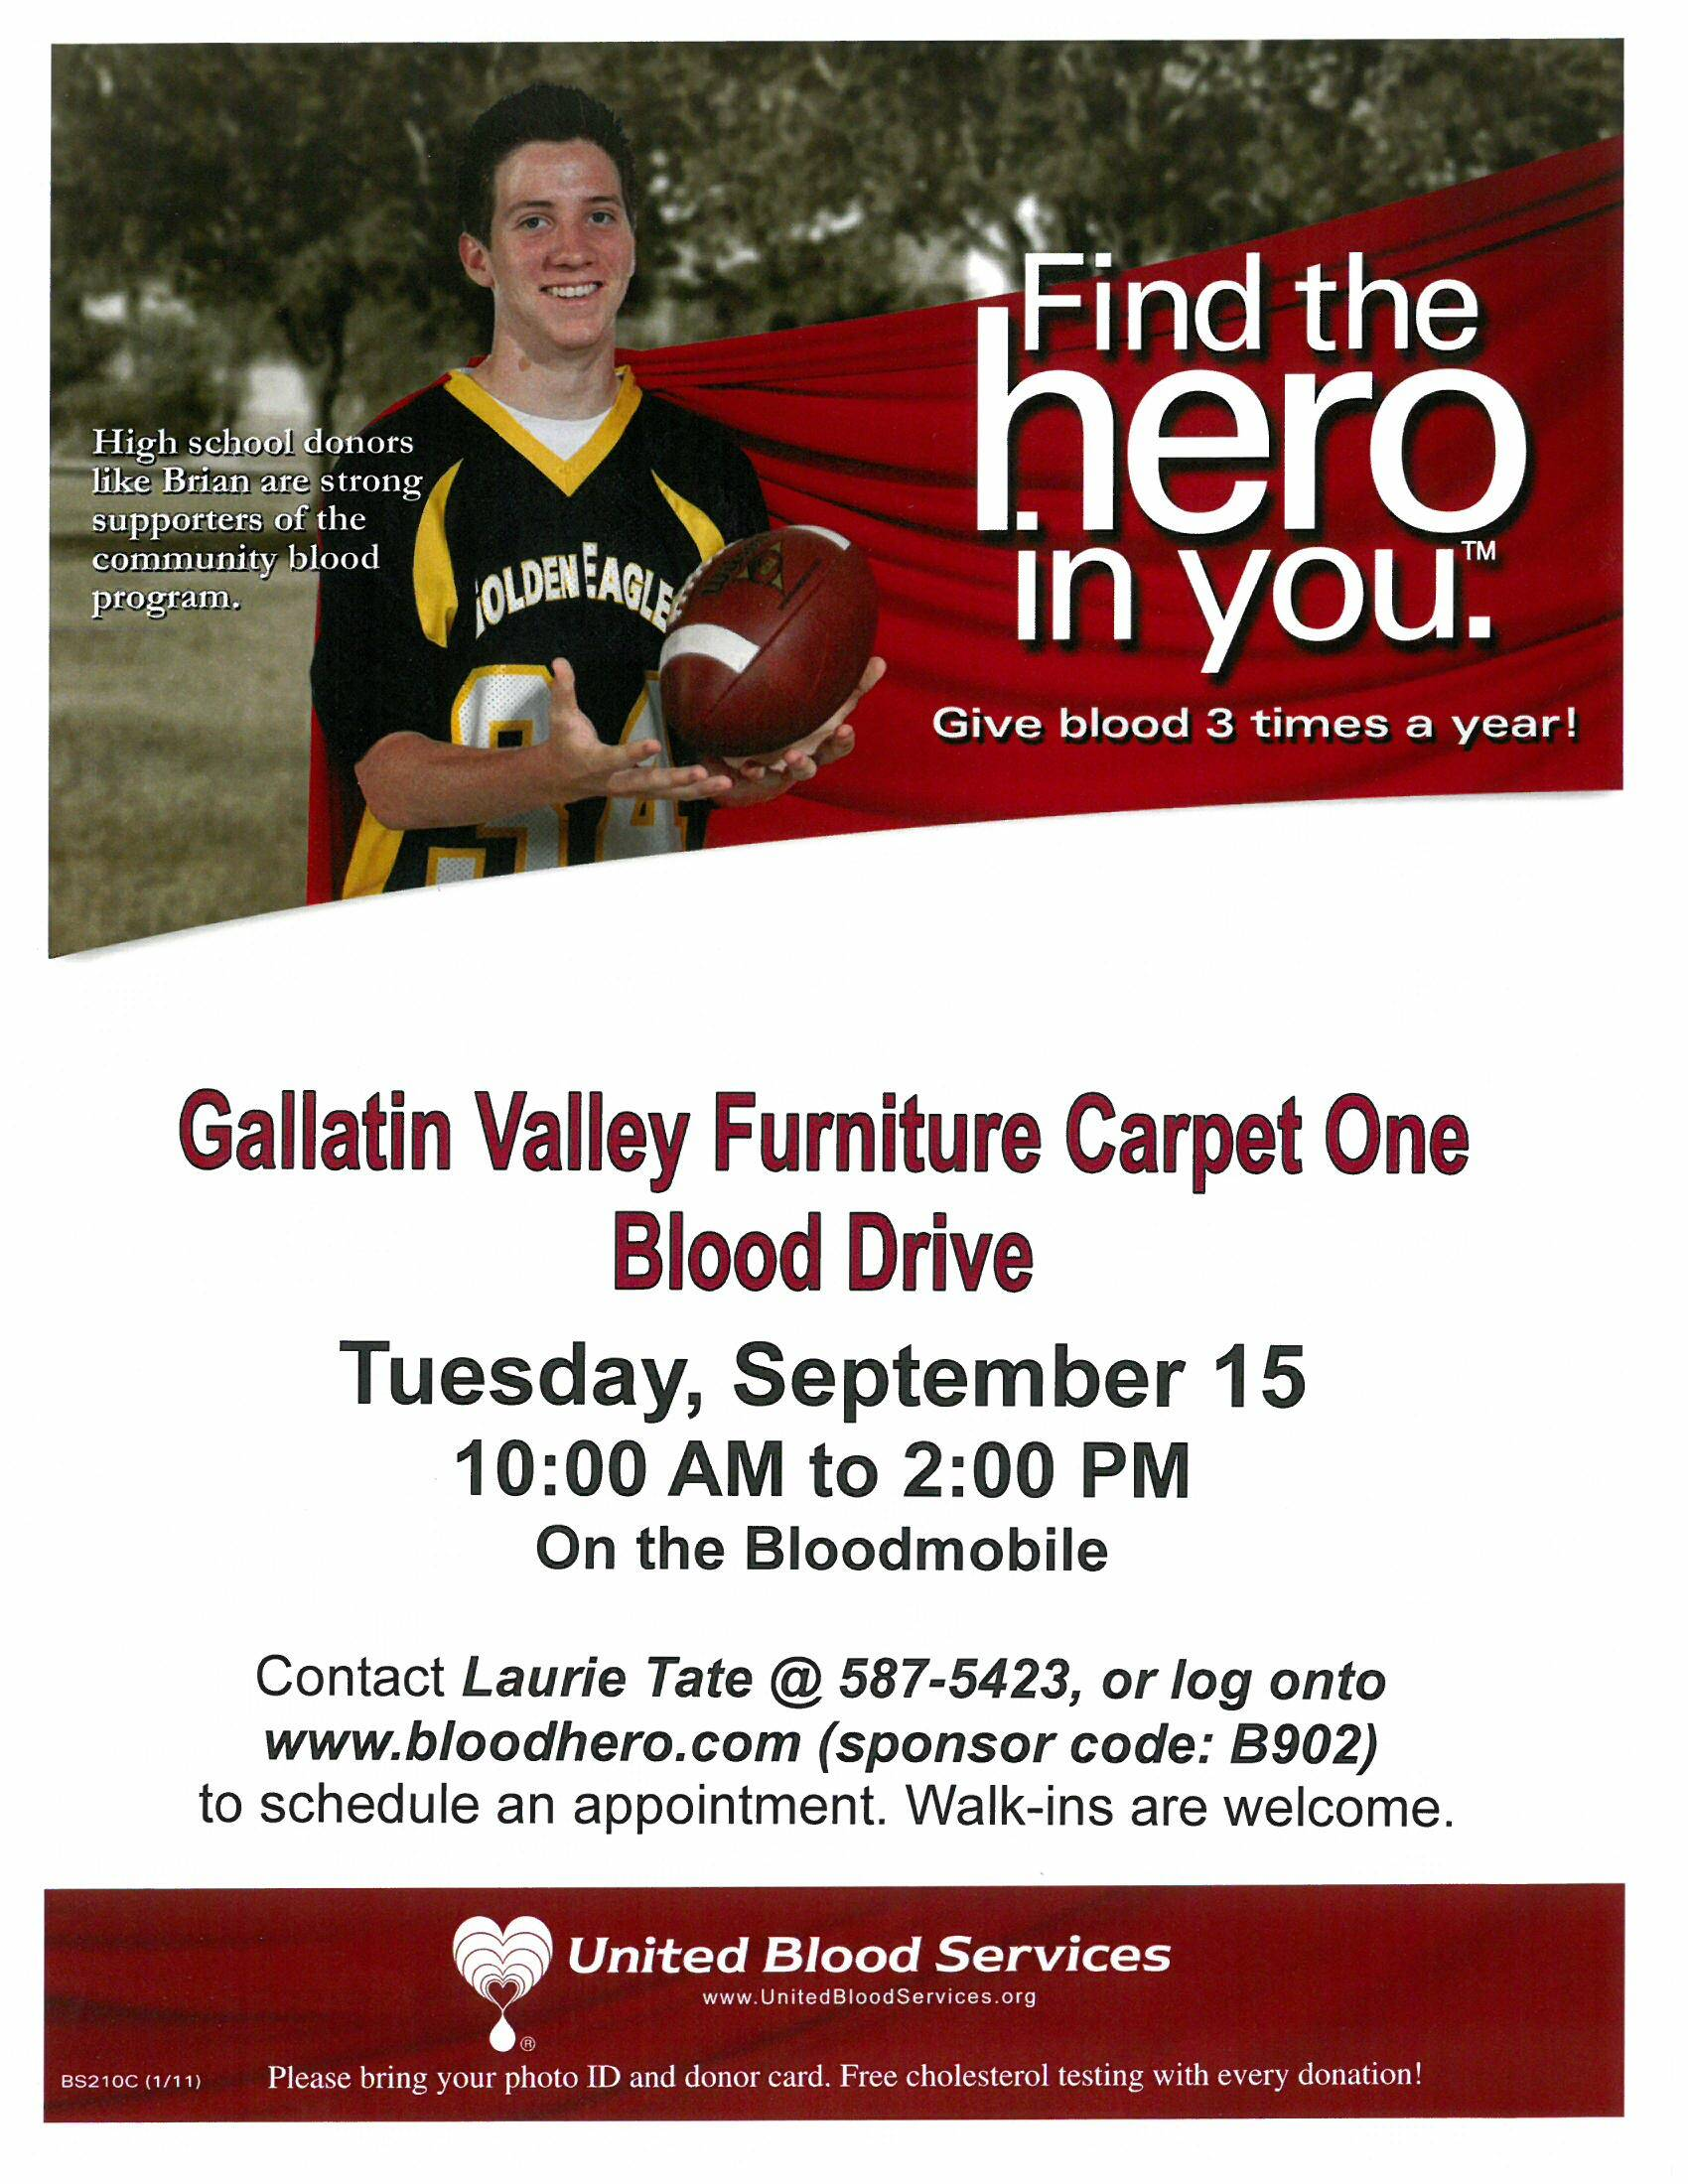 Find The Hero In You Gallatin Valley Furniture Carpet One